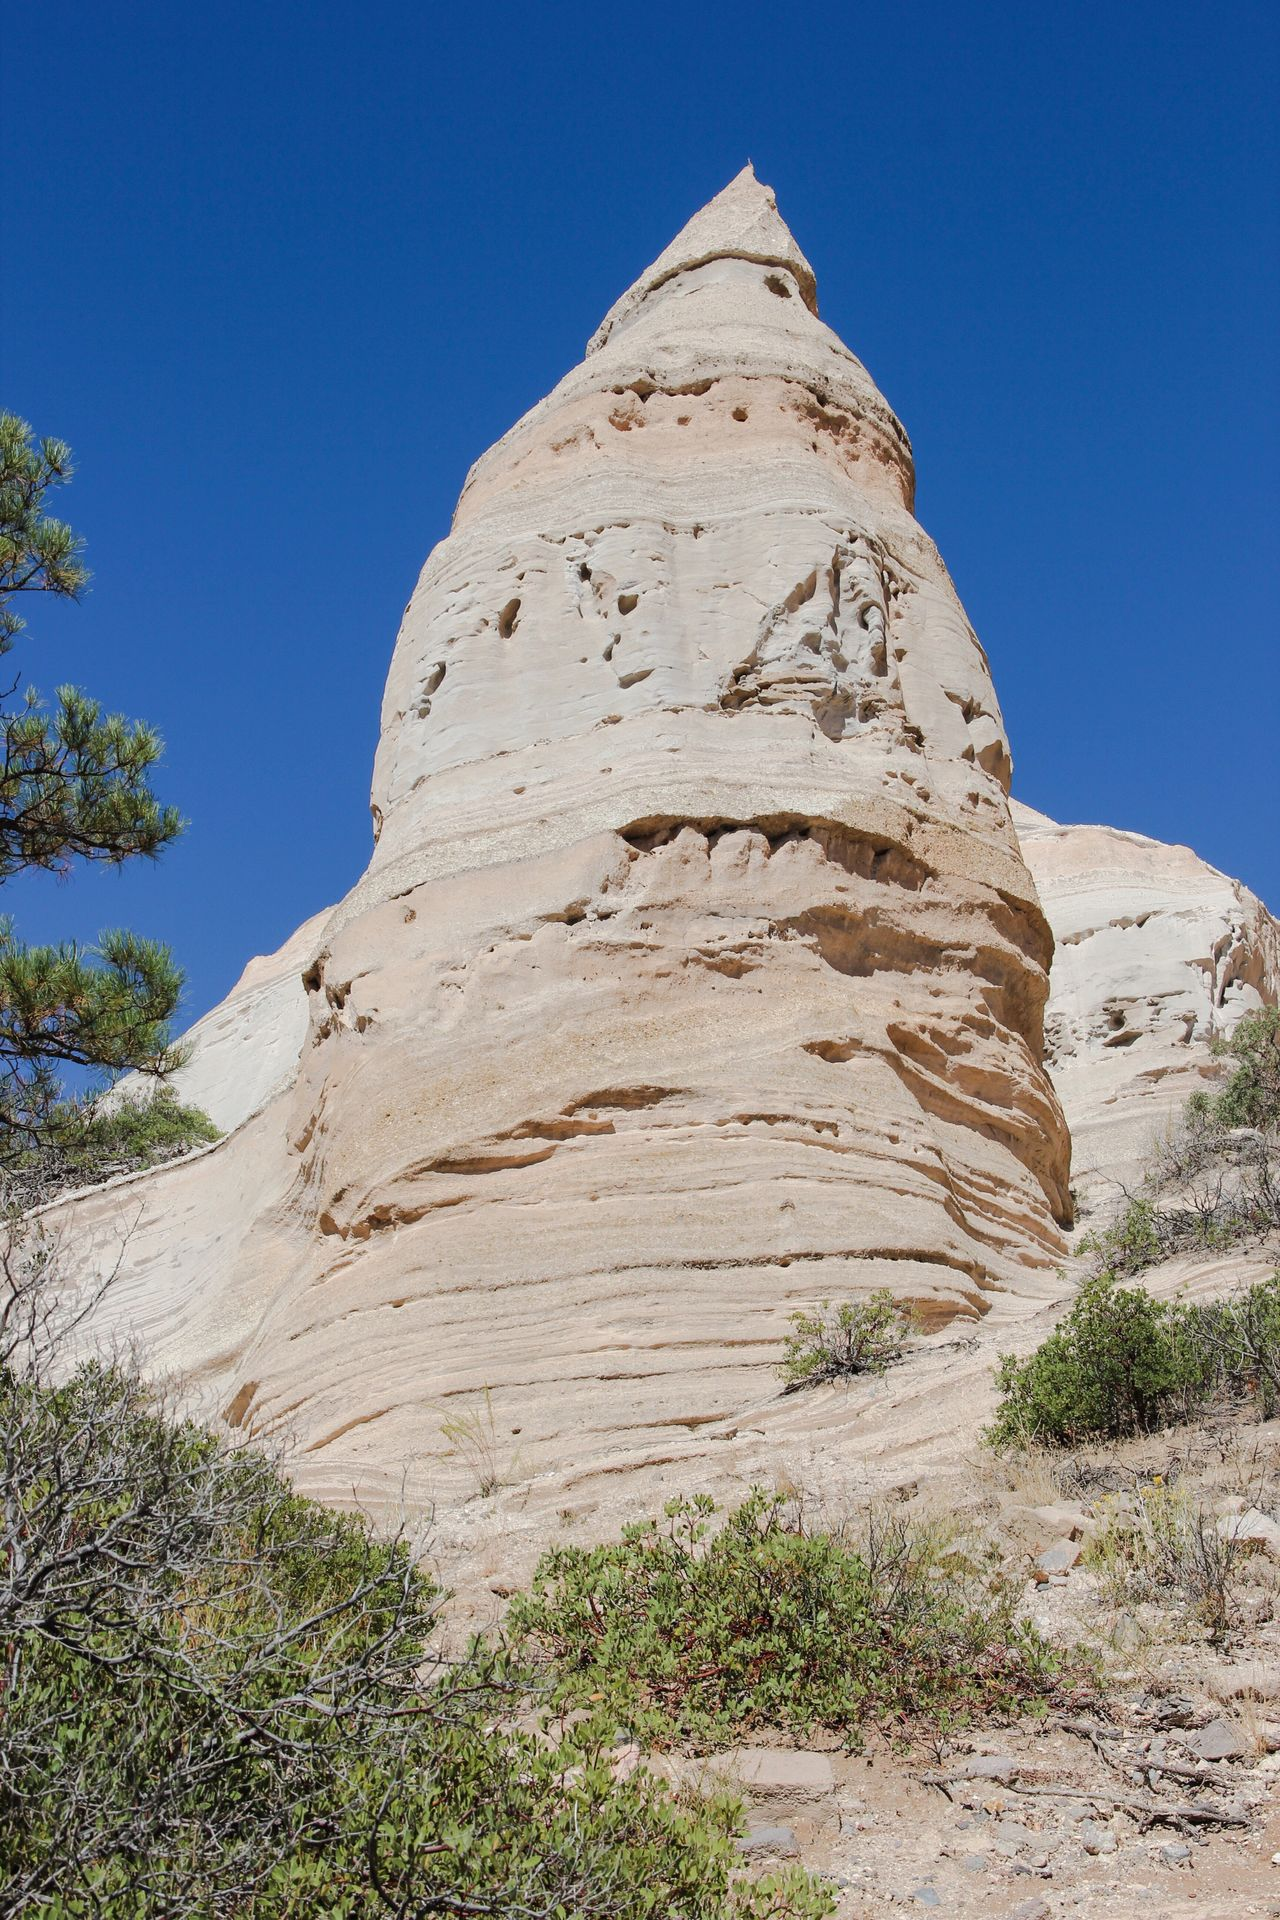 Clear Sky Low Angle View Blue Travel Destinations Famous Place Tree Tourism Tranquil Scene International Landmark Scenics Tranquility Outdoors Rock Formation Physical Geography Day Nature Beauty In Nature Mountain Peak Eroded Sunny Kasha-Katuwe Tent Rocks National Monument No People Beauty In Nature Countryside